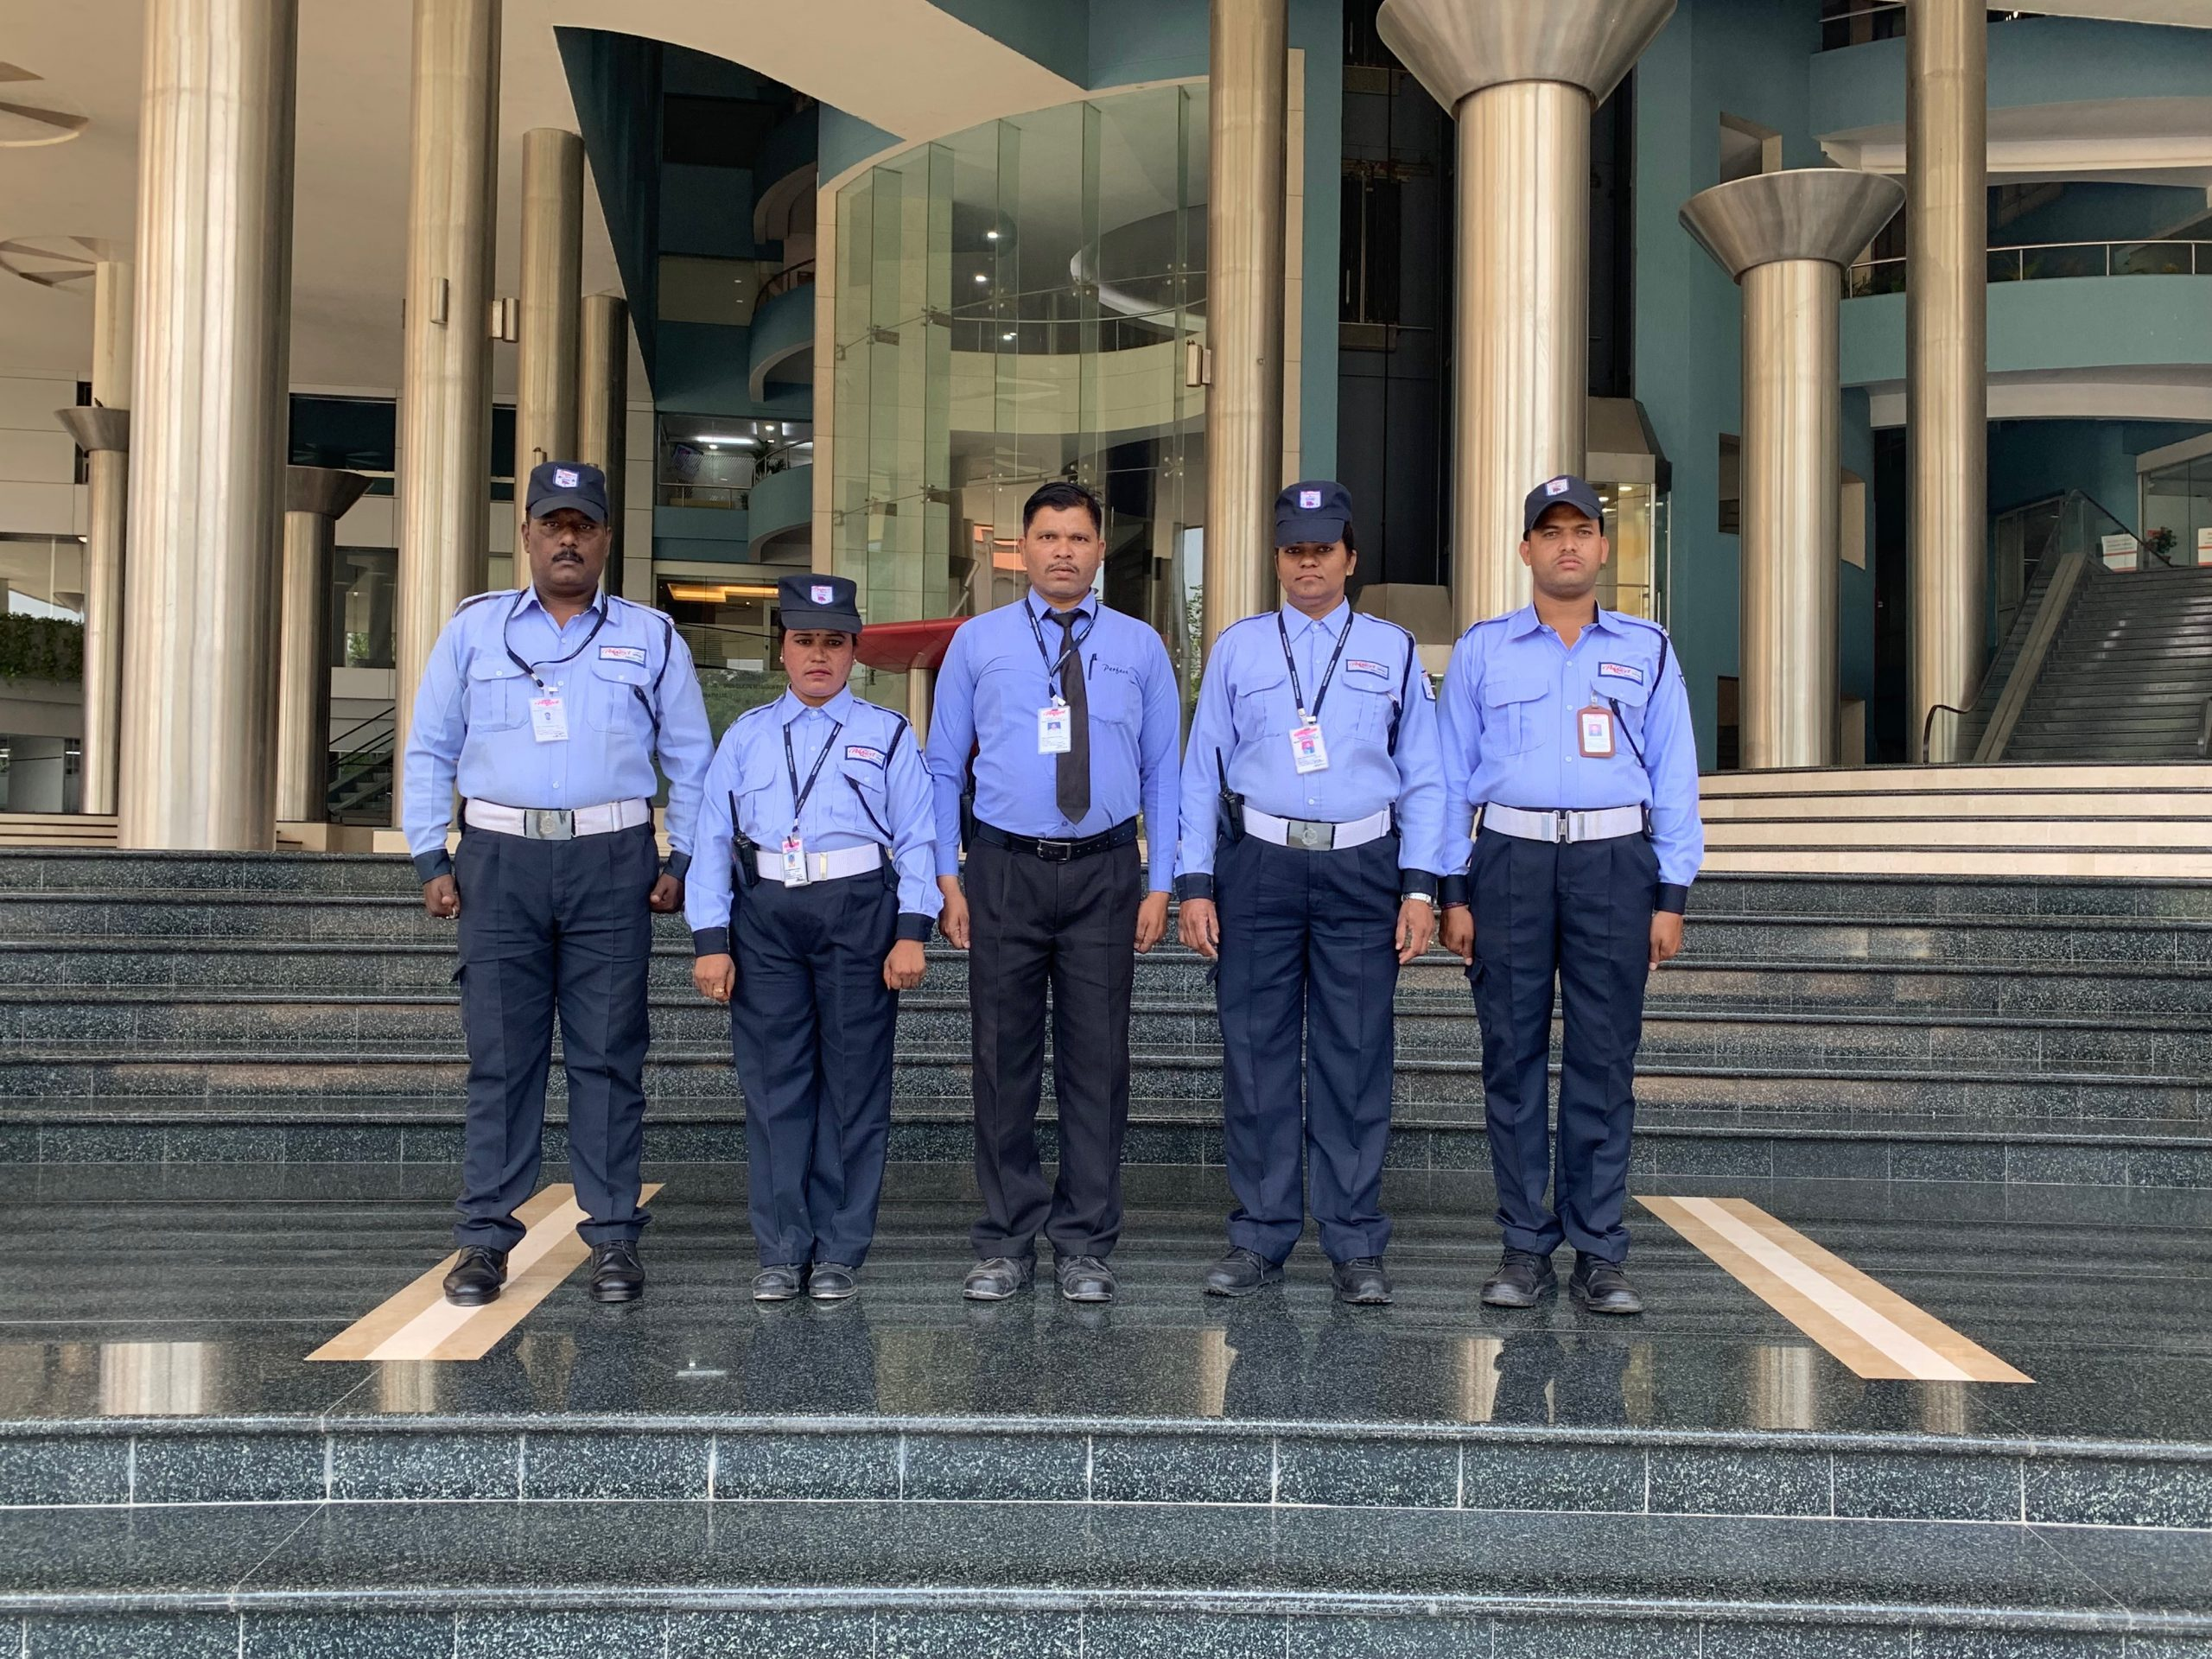 india-security-operations-perfect-protection-security-cleaning-dubai-